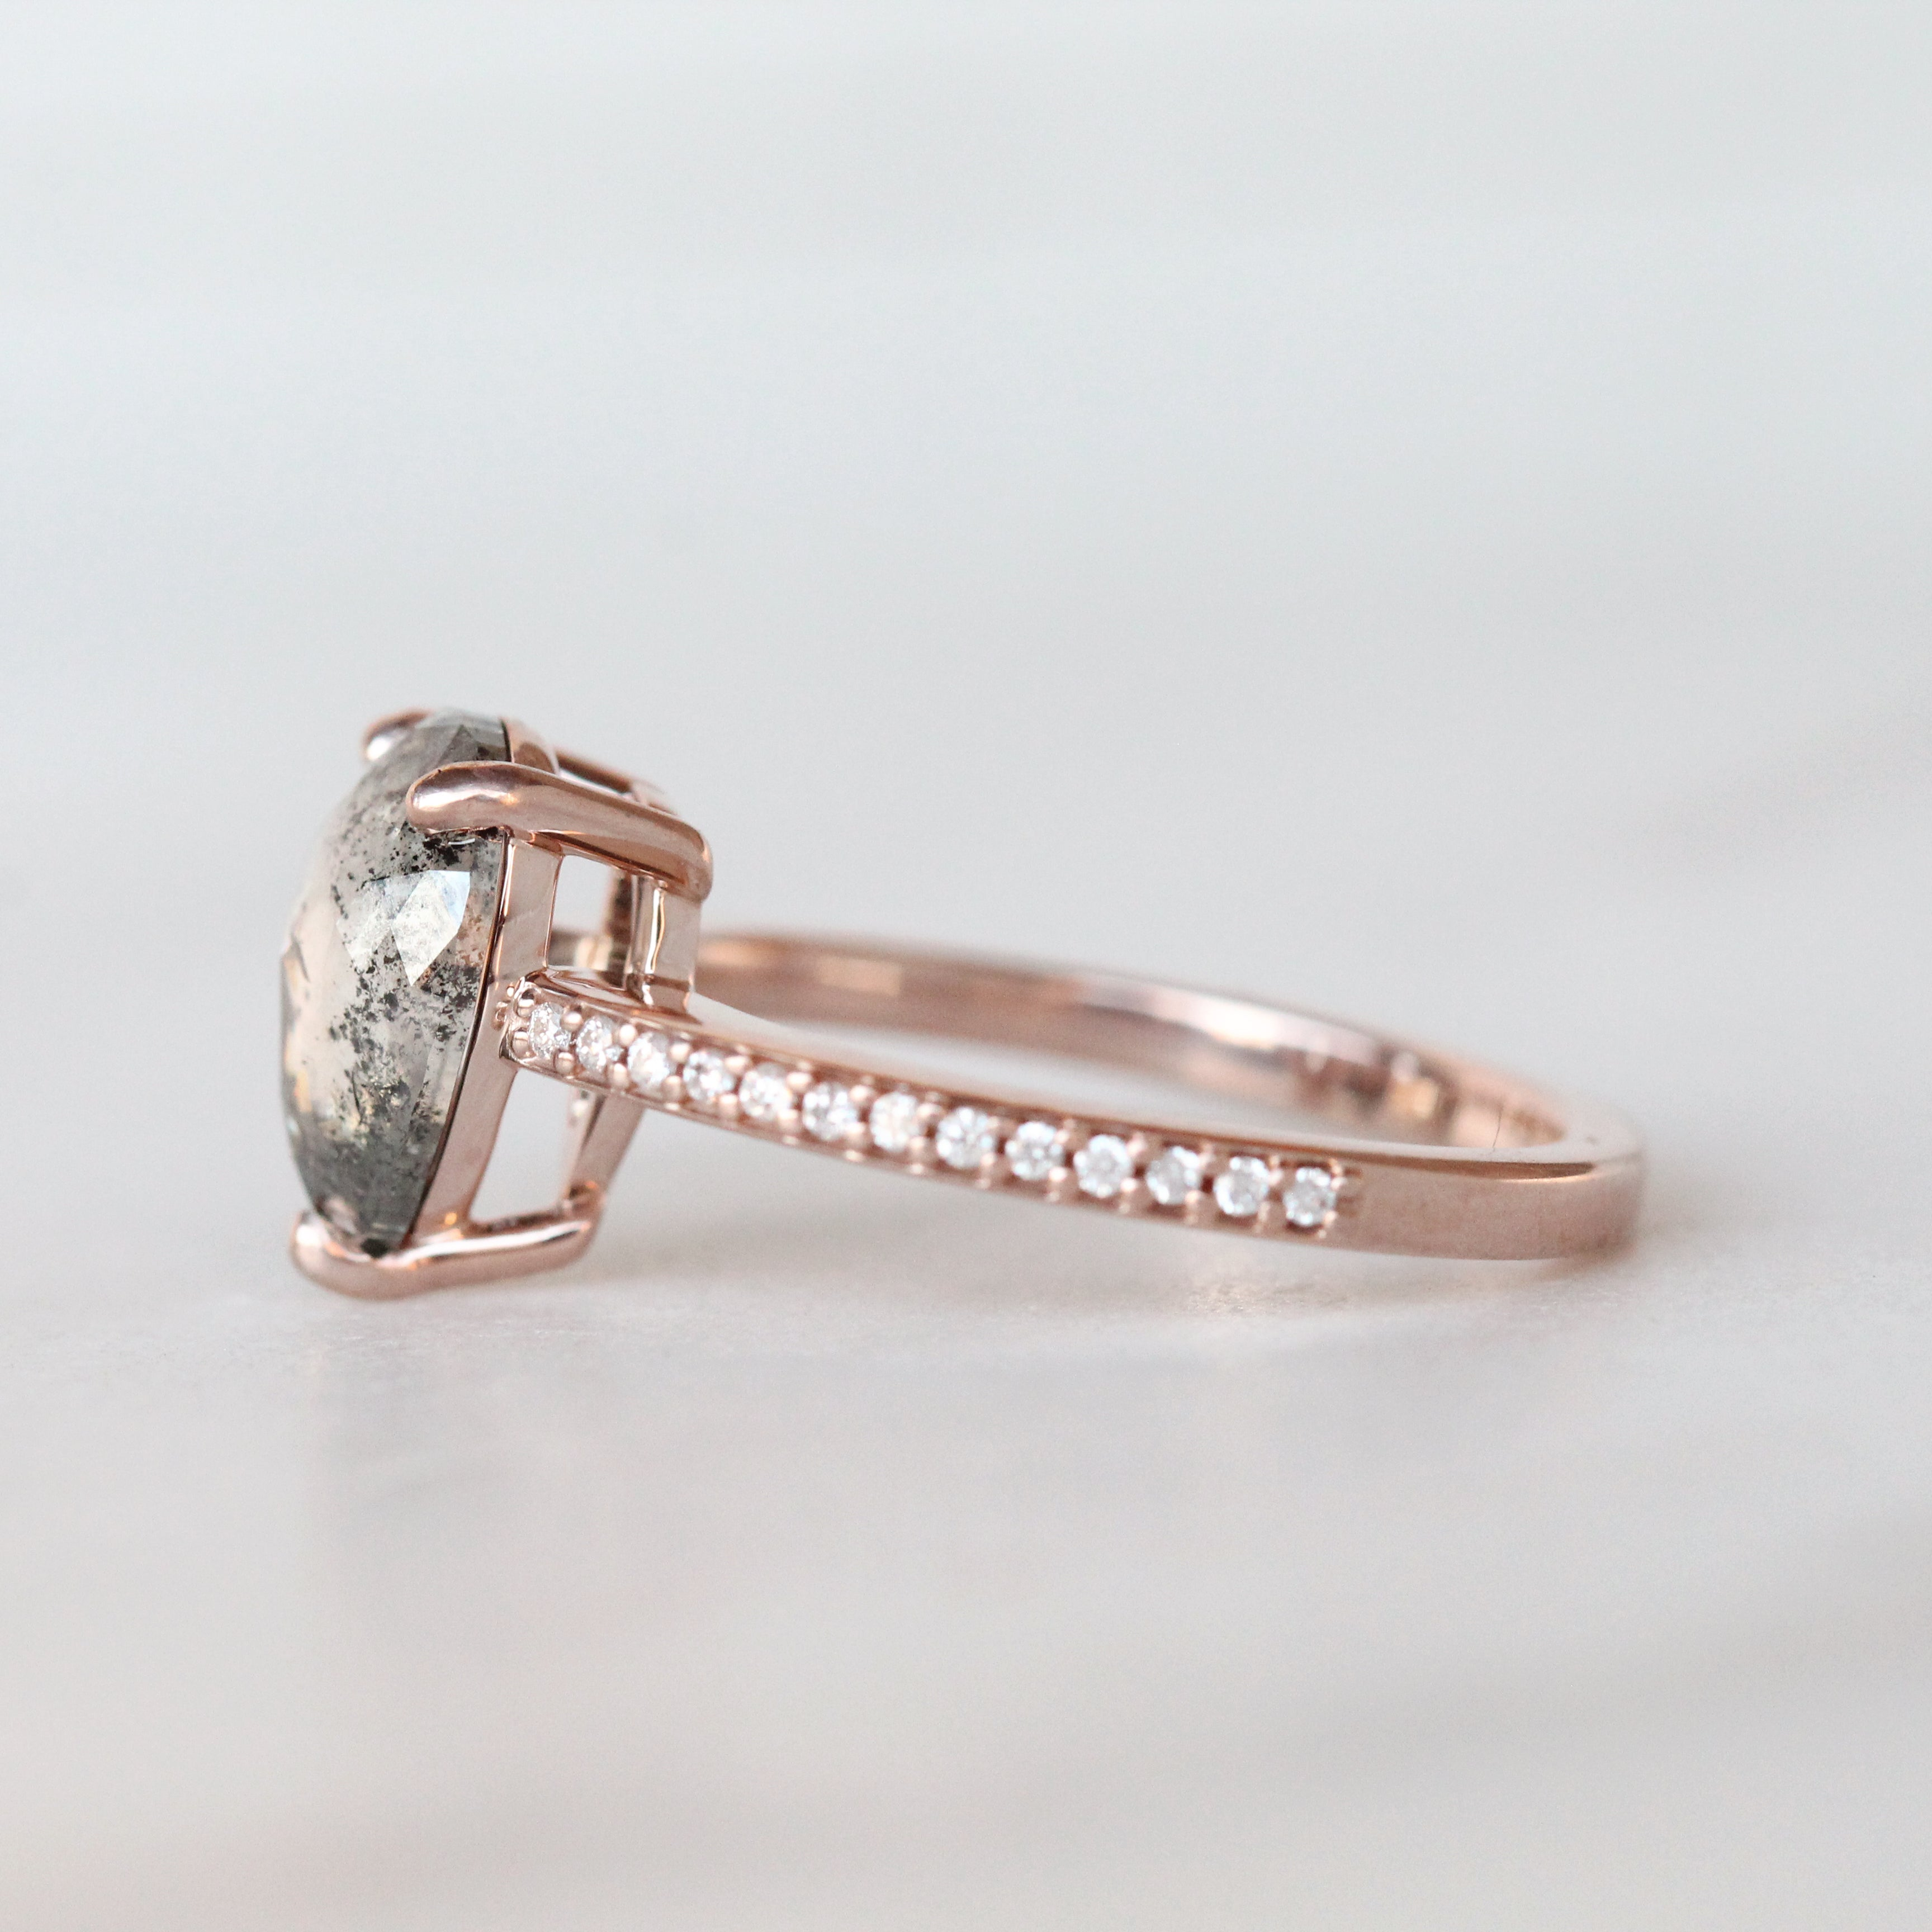 Imani Ring with a 1.85 Carat Rose Cut Pear Celestial Diamond in 14k Rose Gold - Ready to Size and Ship - Midwinter Co. Alternative Bridal Rings and Modern Fine Jewelry